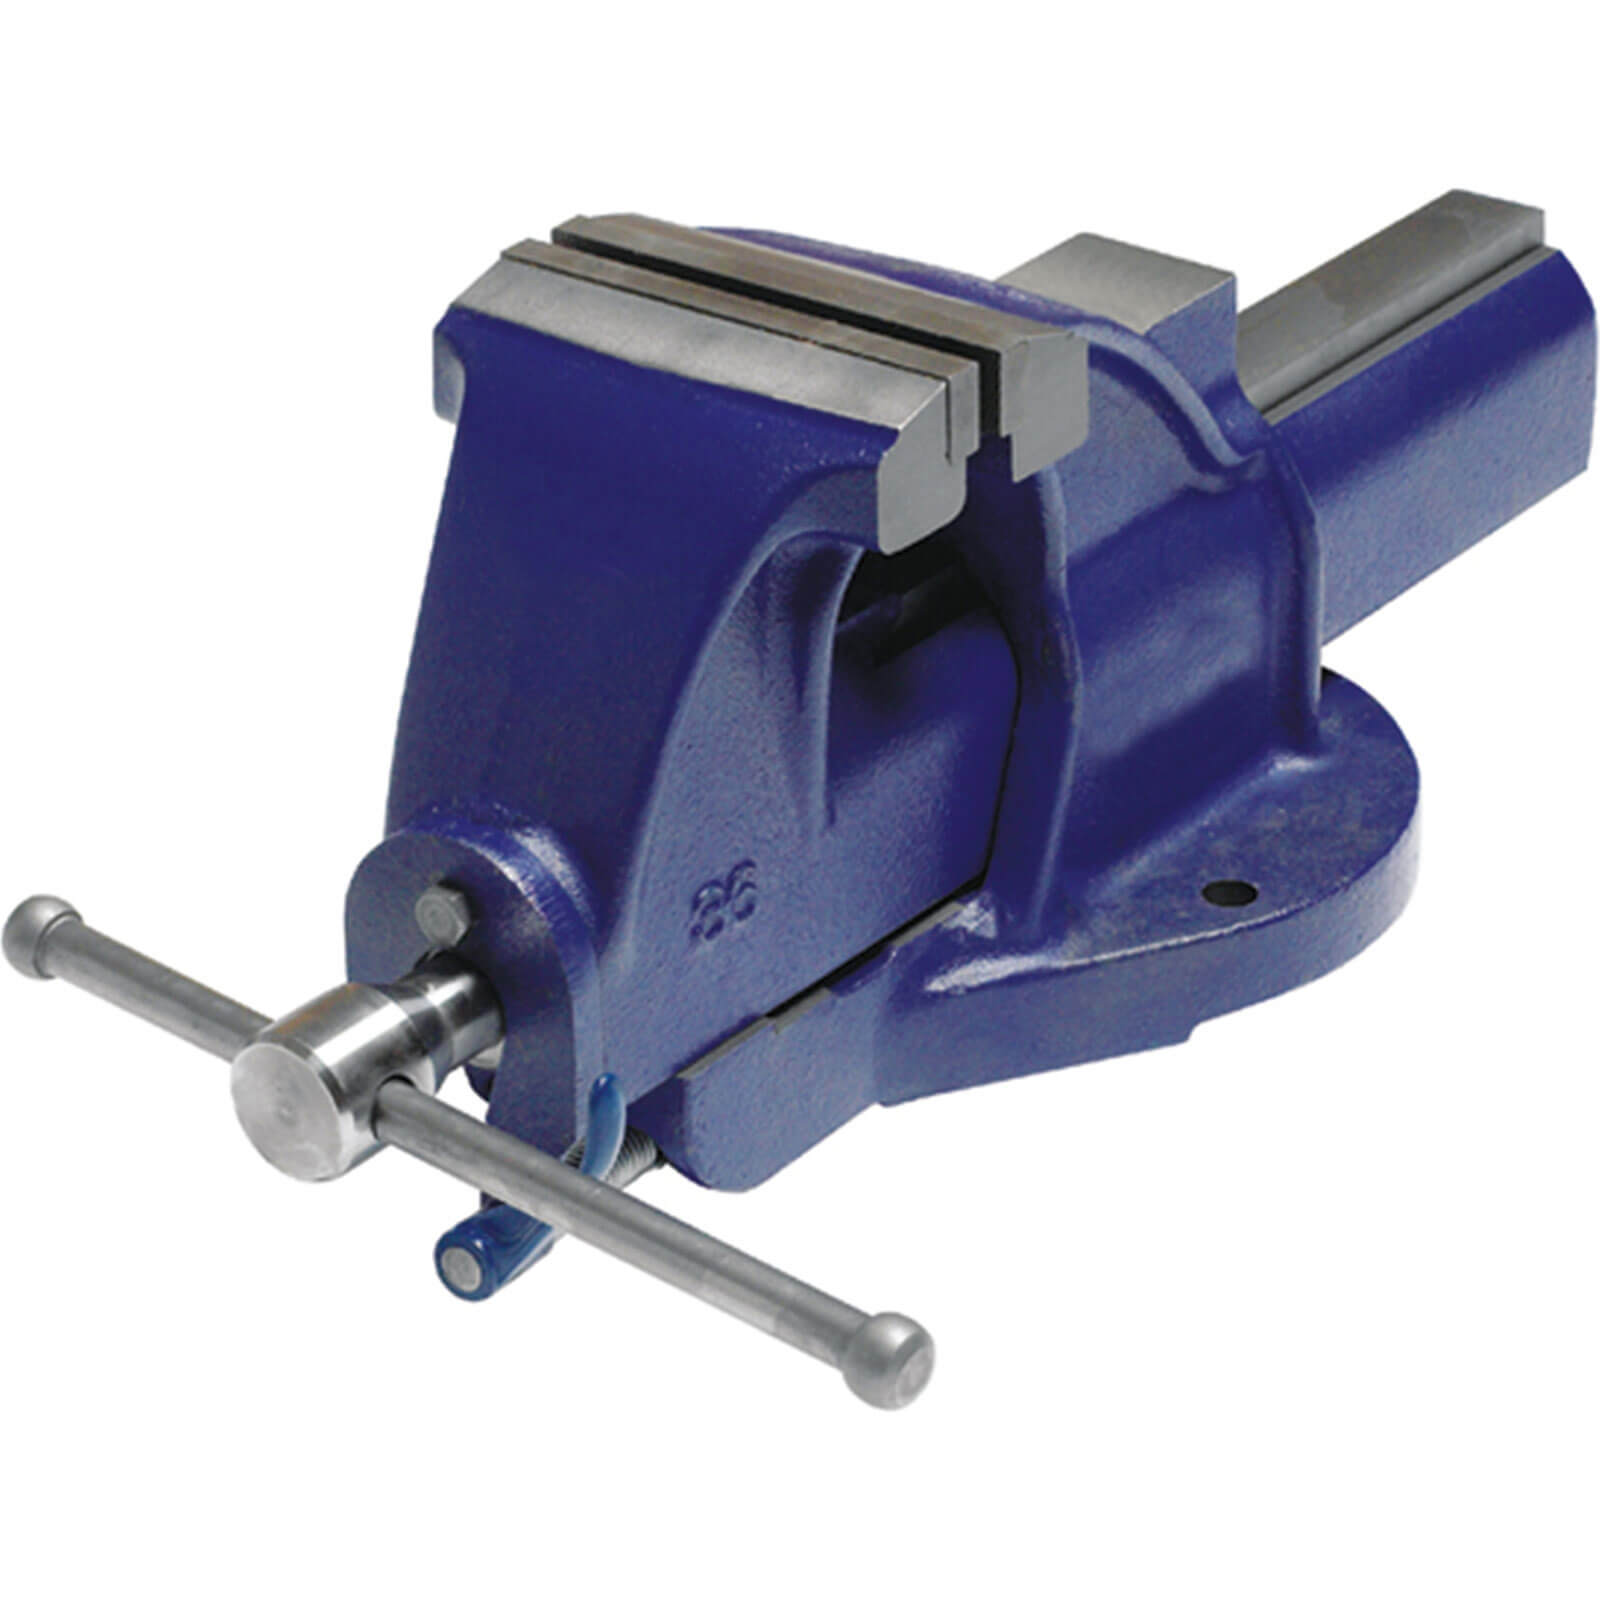 Image of Irwin Record Quick Relase Engineers Vice 150mm